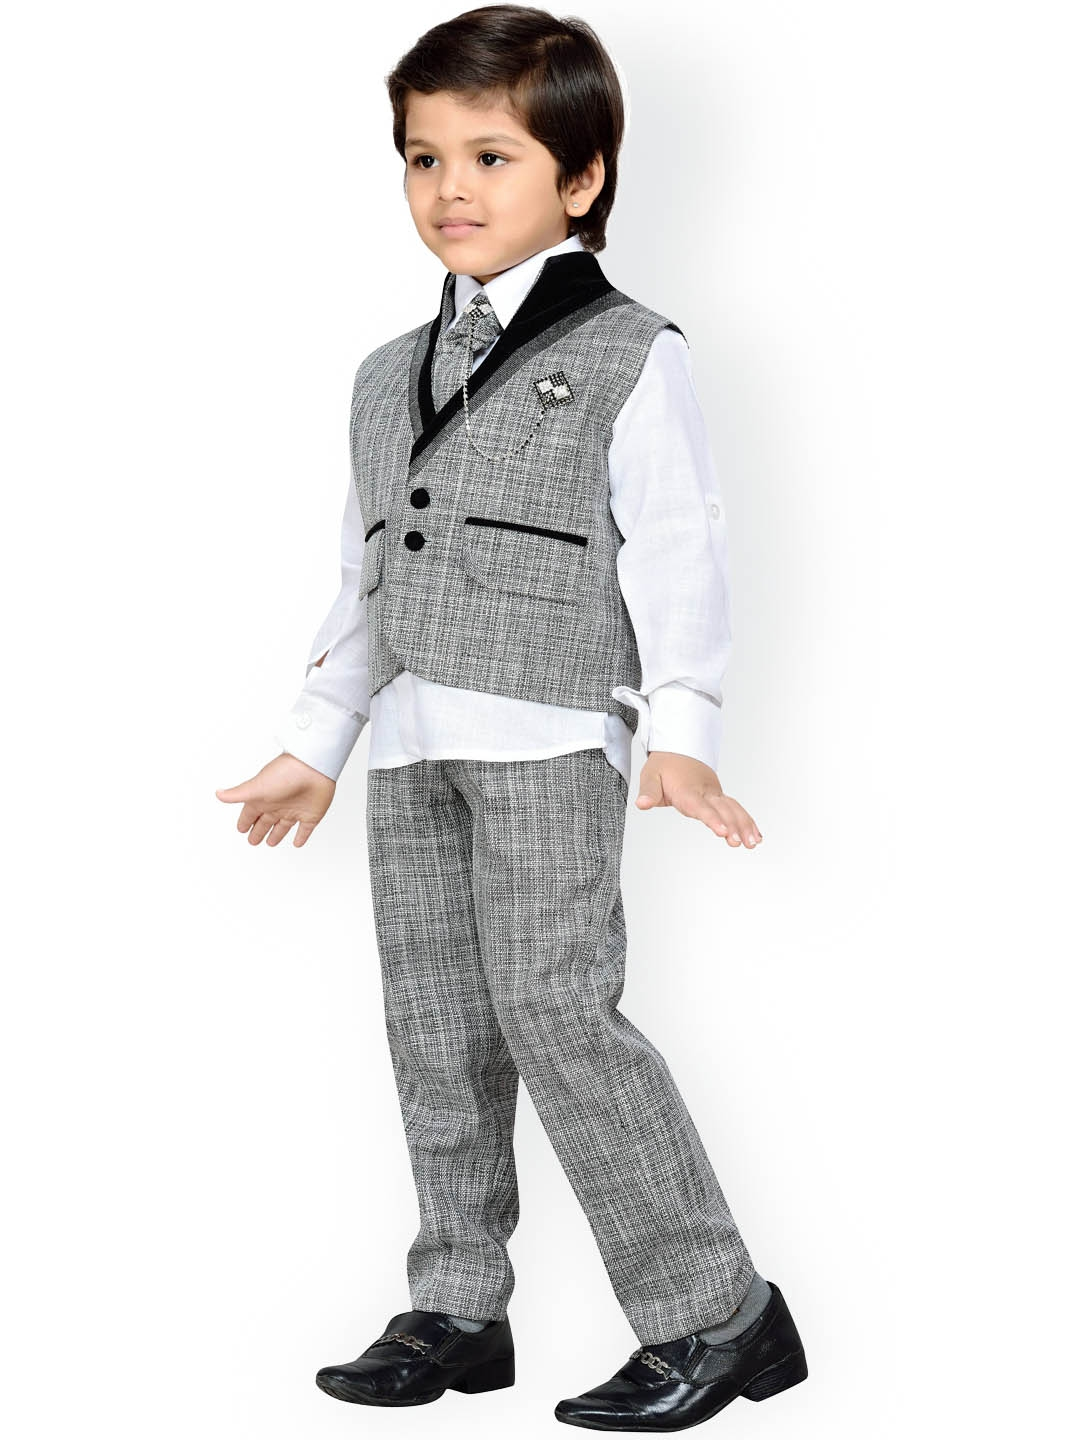 862a0ab40 Buy Aj DEZInES Boys Grey   White Regular Fit Party Waistcoat Suit ...